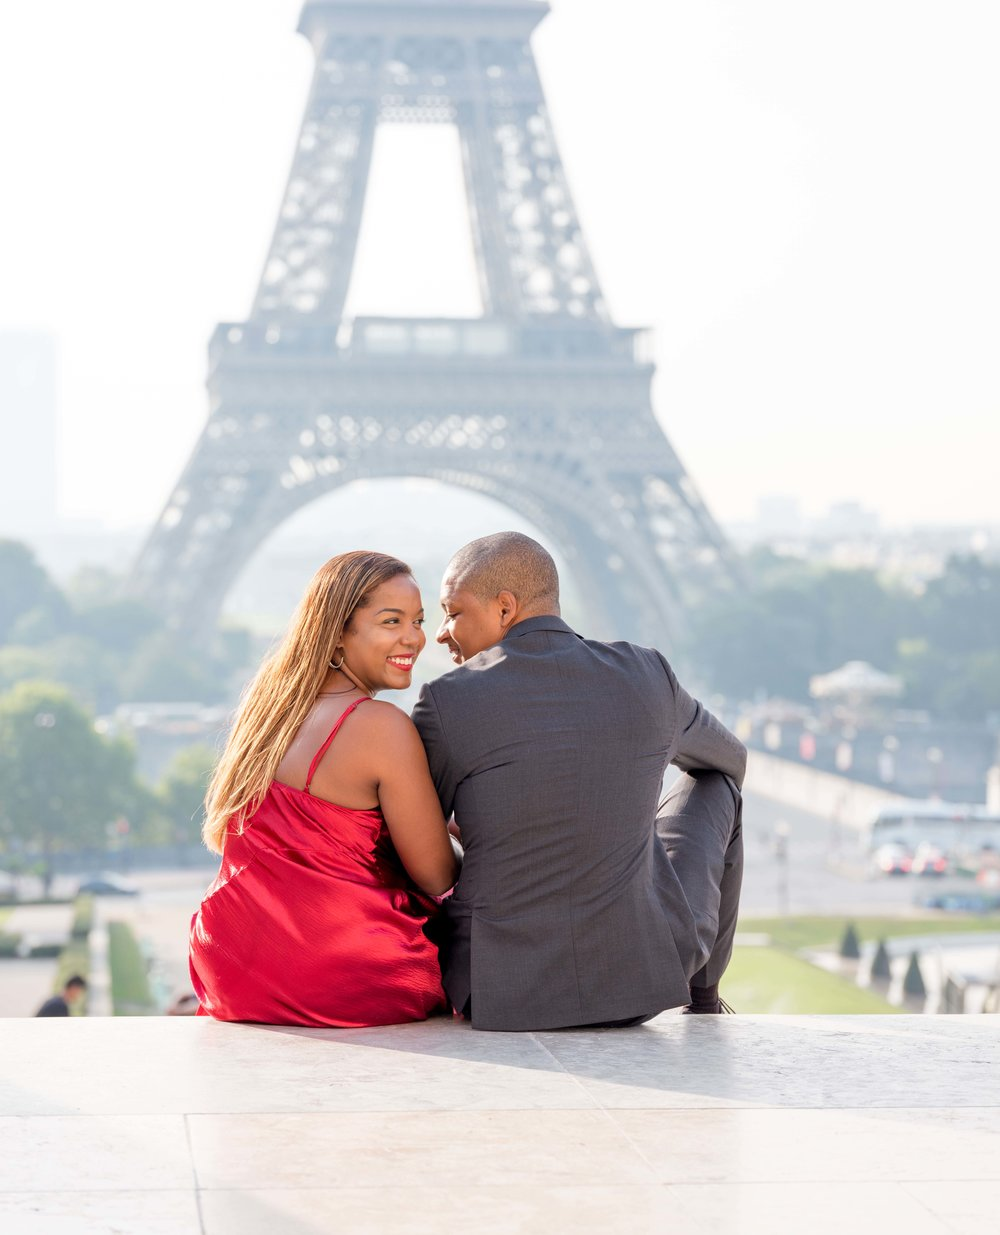 jache & davina - I'll always remember Davina as the beautiful lady in red for this elegant Paris photo shoot. We began at the Eiffel Tower and finished at the Louvre during our session, and it was as radiant as the love between this couple.See more images here